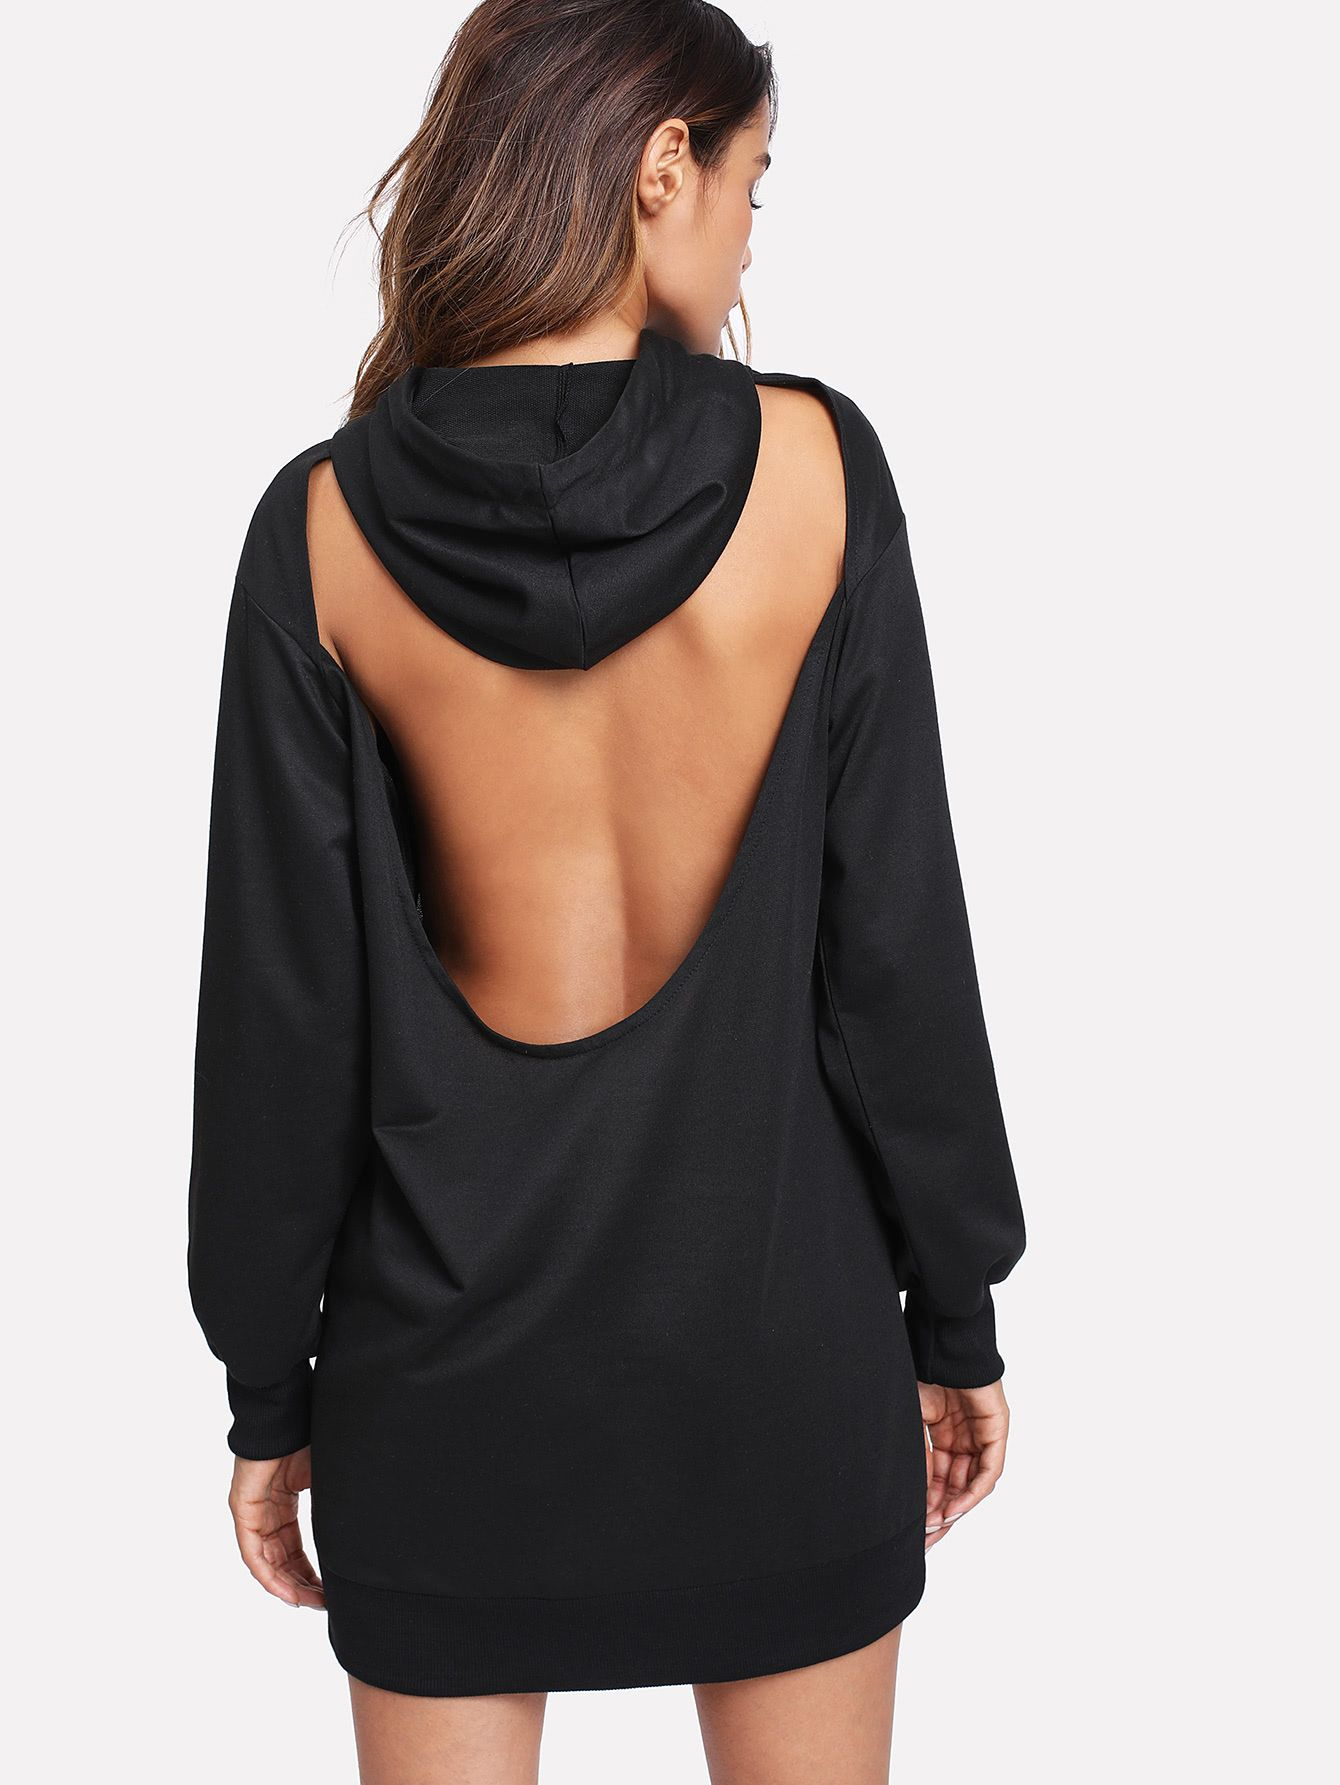 Open Back Drawstring Hoodie Dress (With images) Hoodie